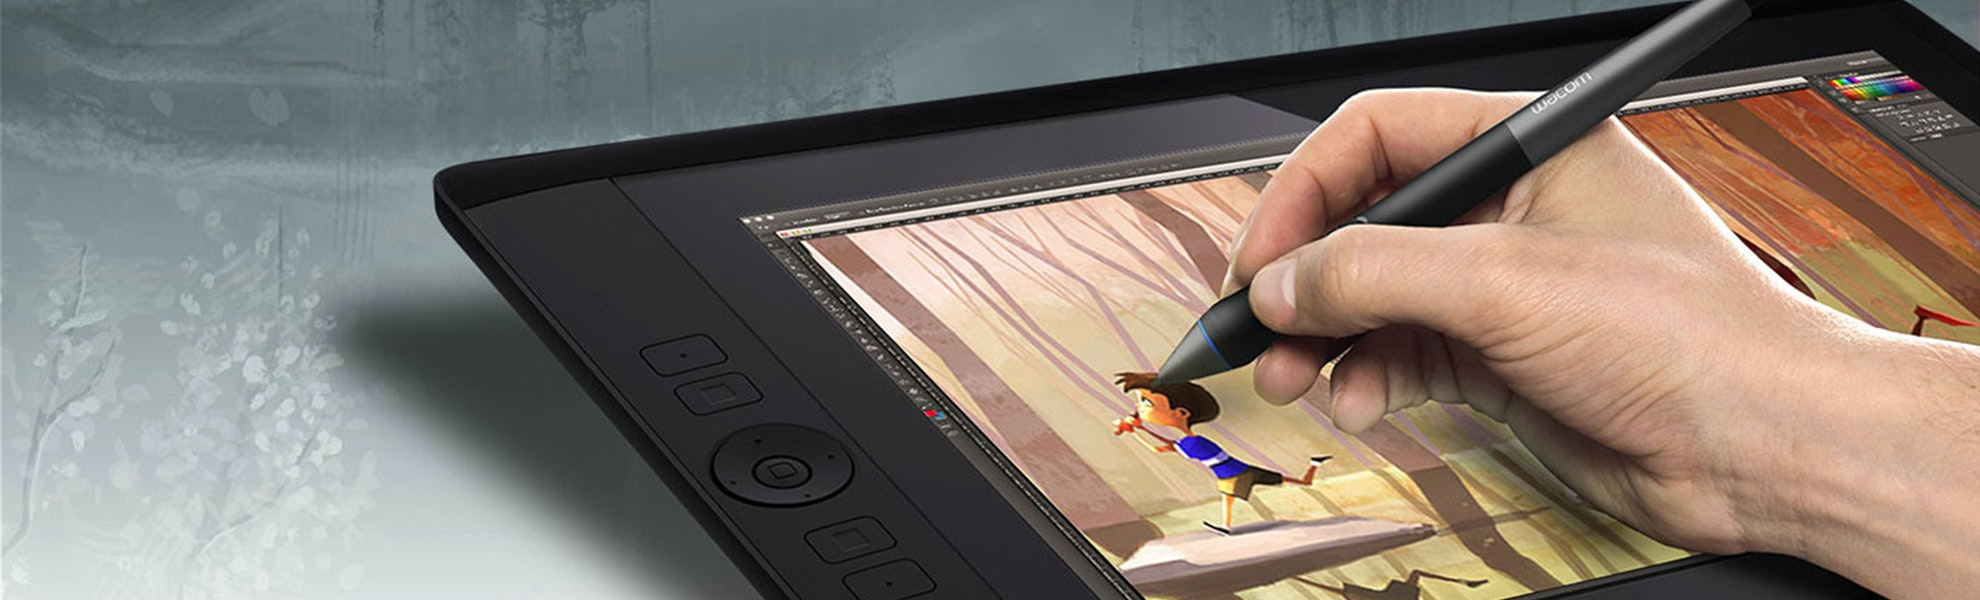 Wacom Cintiq 13HD Pen/Touch Tablet Refurbished